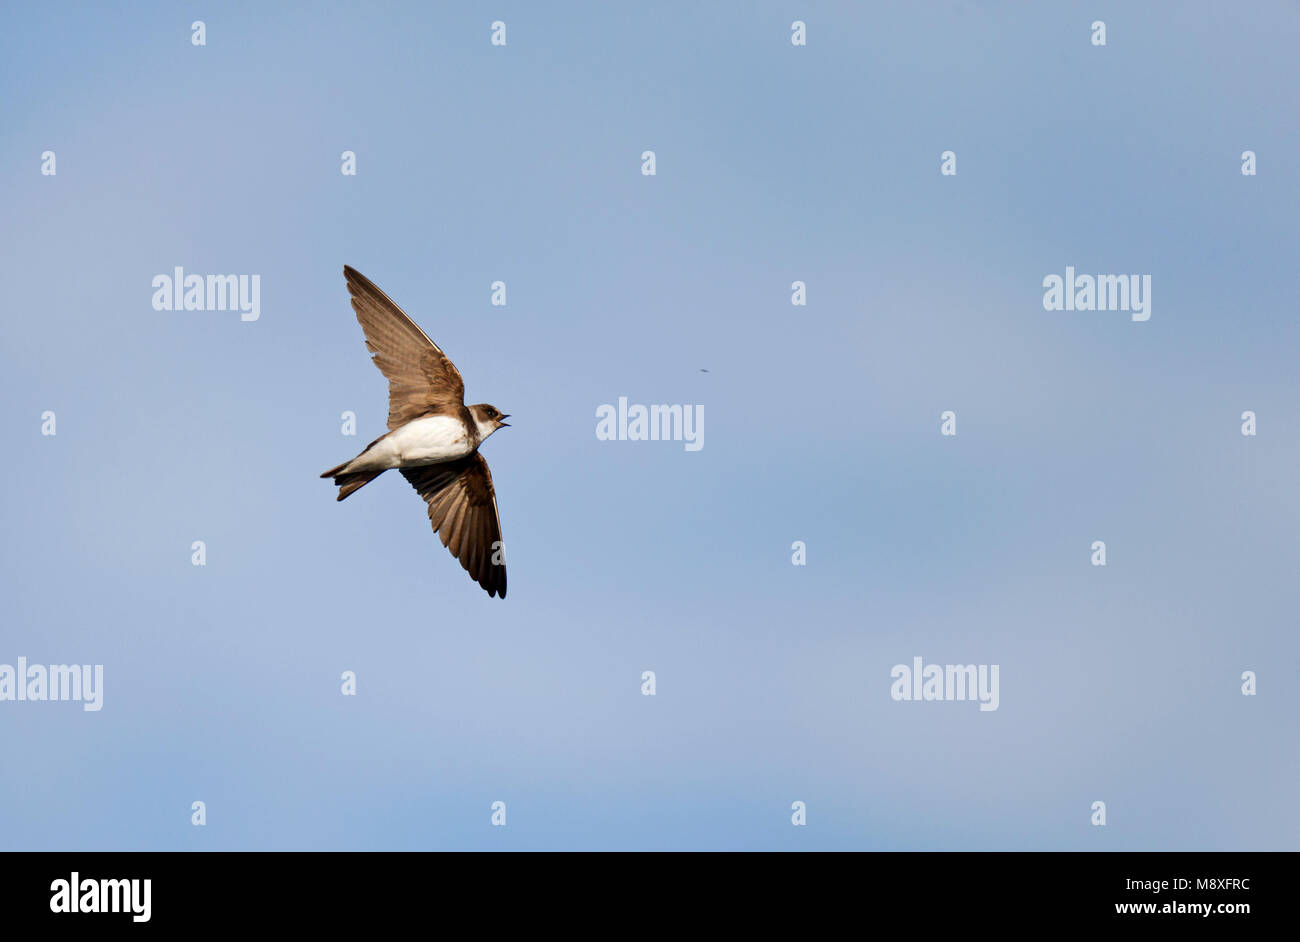 Vliegende fouragerende Oeverzwaluw vangt met open snavel insect uit de lucht; Flying foraging Sand Martin with open bill to catch an insect from the a Stock Photo